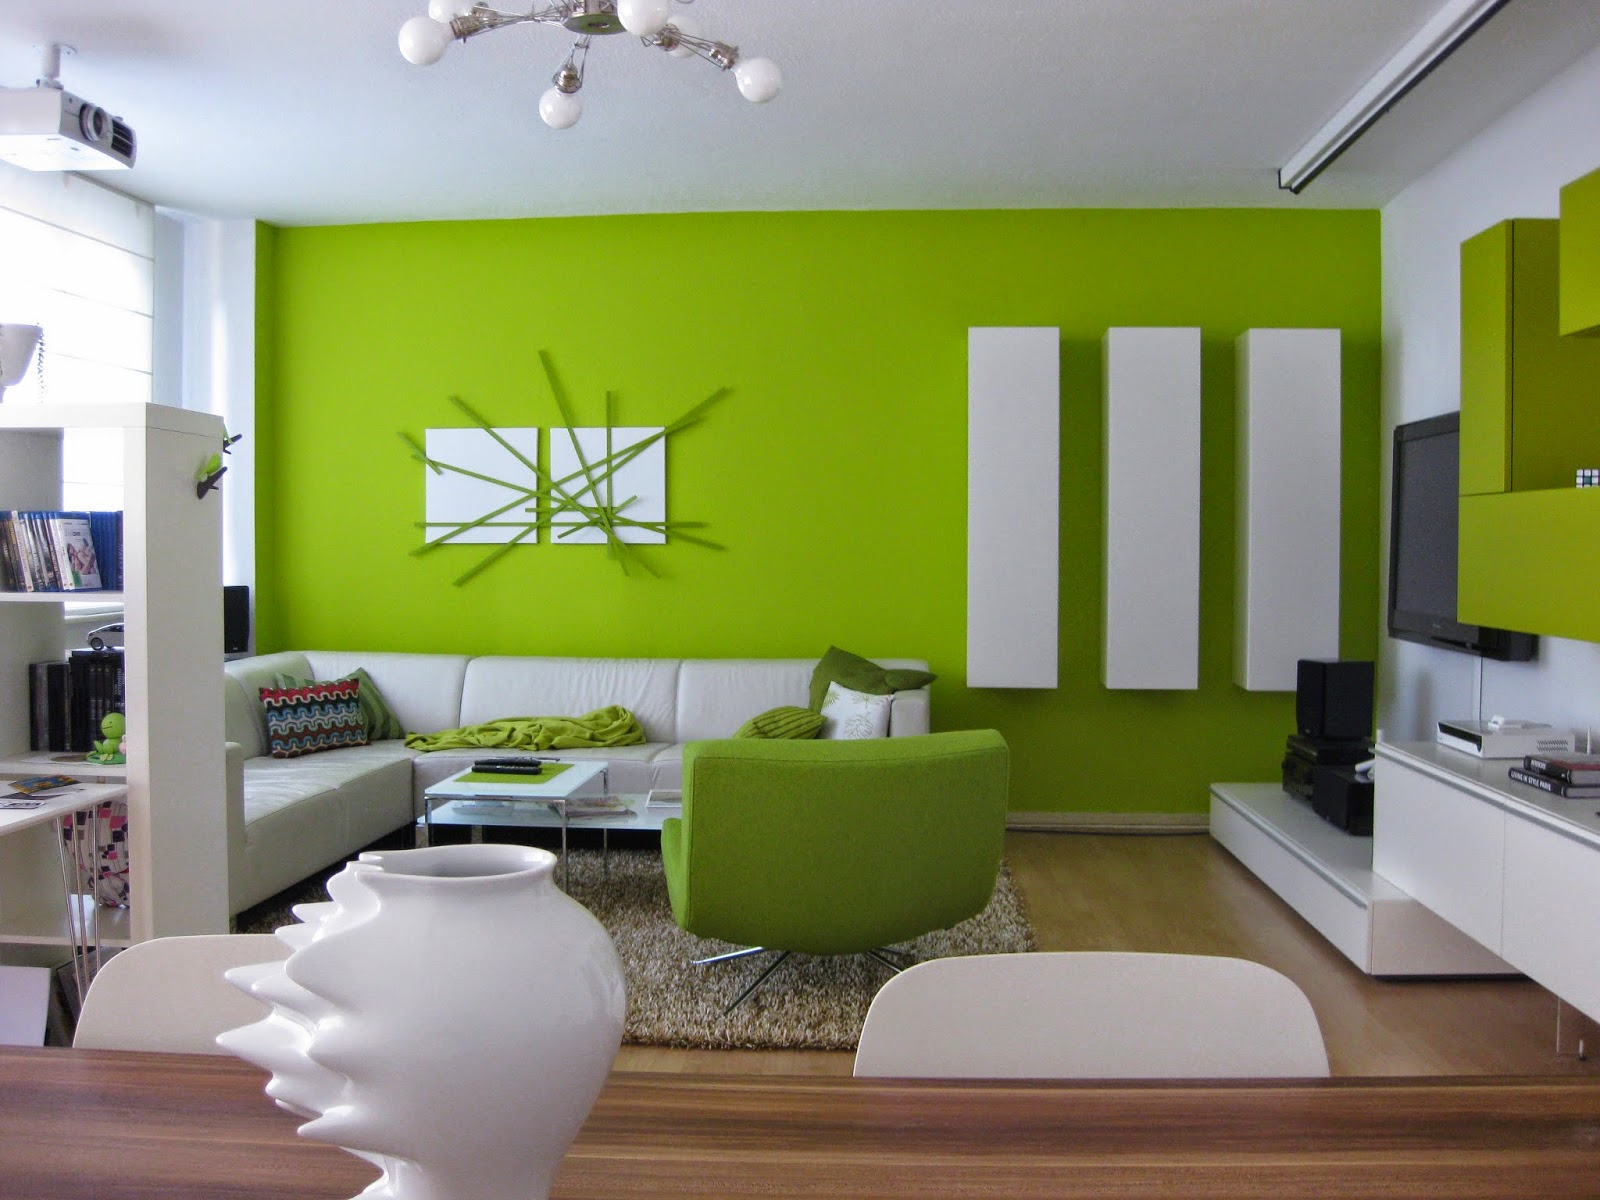 Fotos de sala en color verde salas con estilo for Pintura para interiores 2016